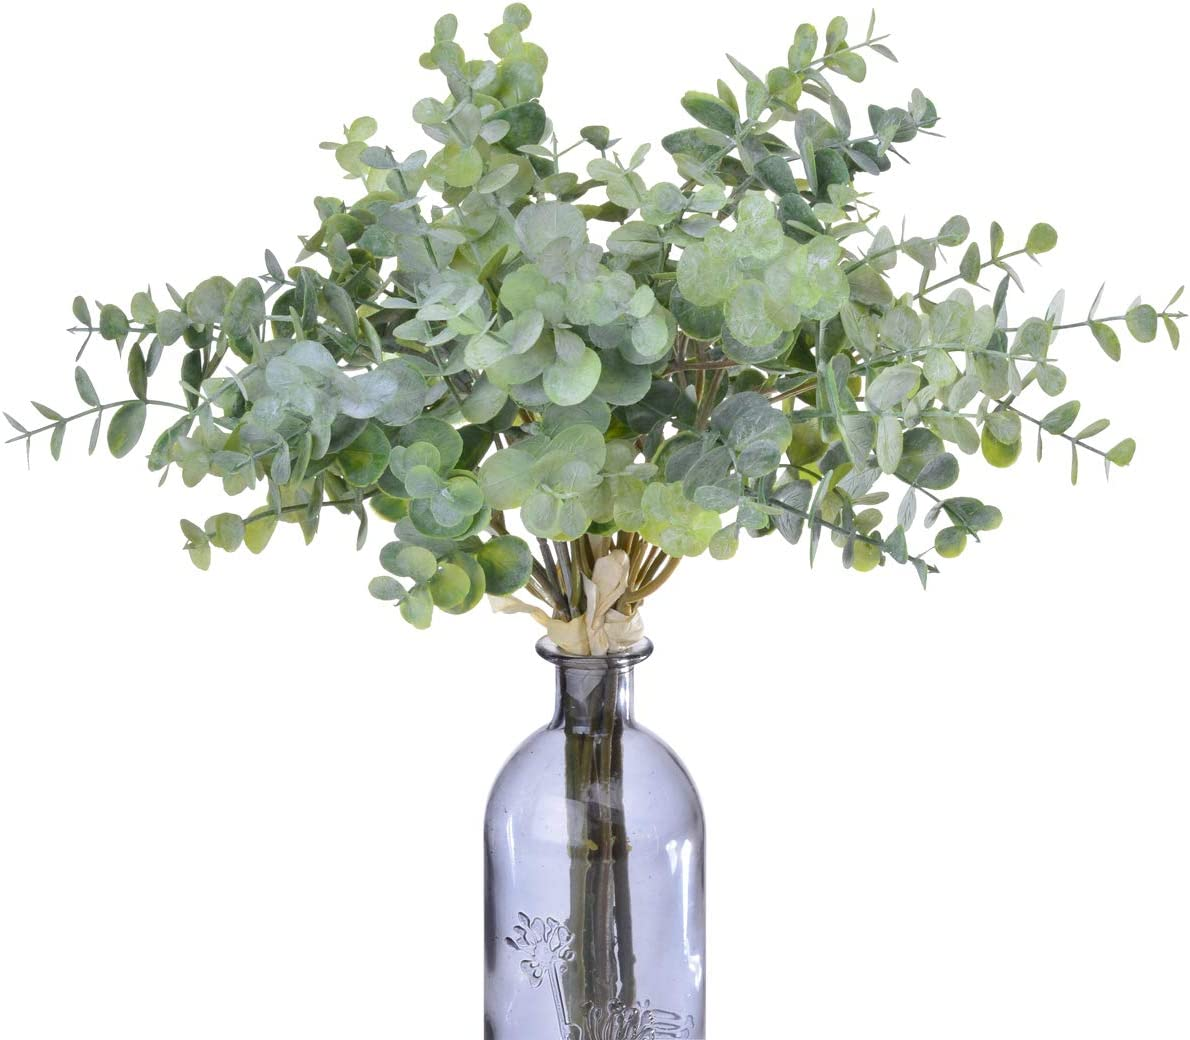 Anna Homey Decor Artificial Eucalyptus Leaves Stems Bulk Fake Vine Greenery Leaves Plants Artificial Silver Dollar Eucalyptus Plant for Holiday Wedding DIY Garden Office Decor,2PCS Arificial Flowers